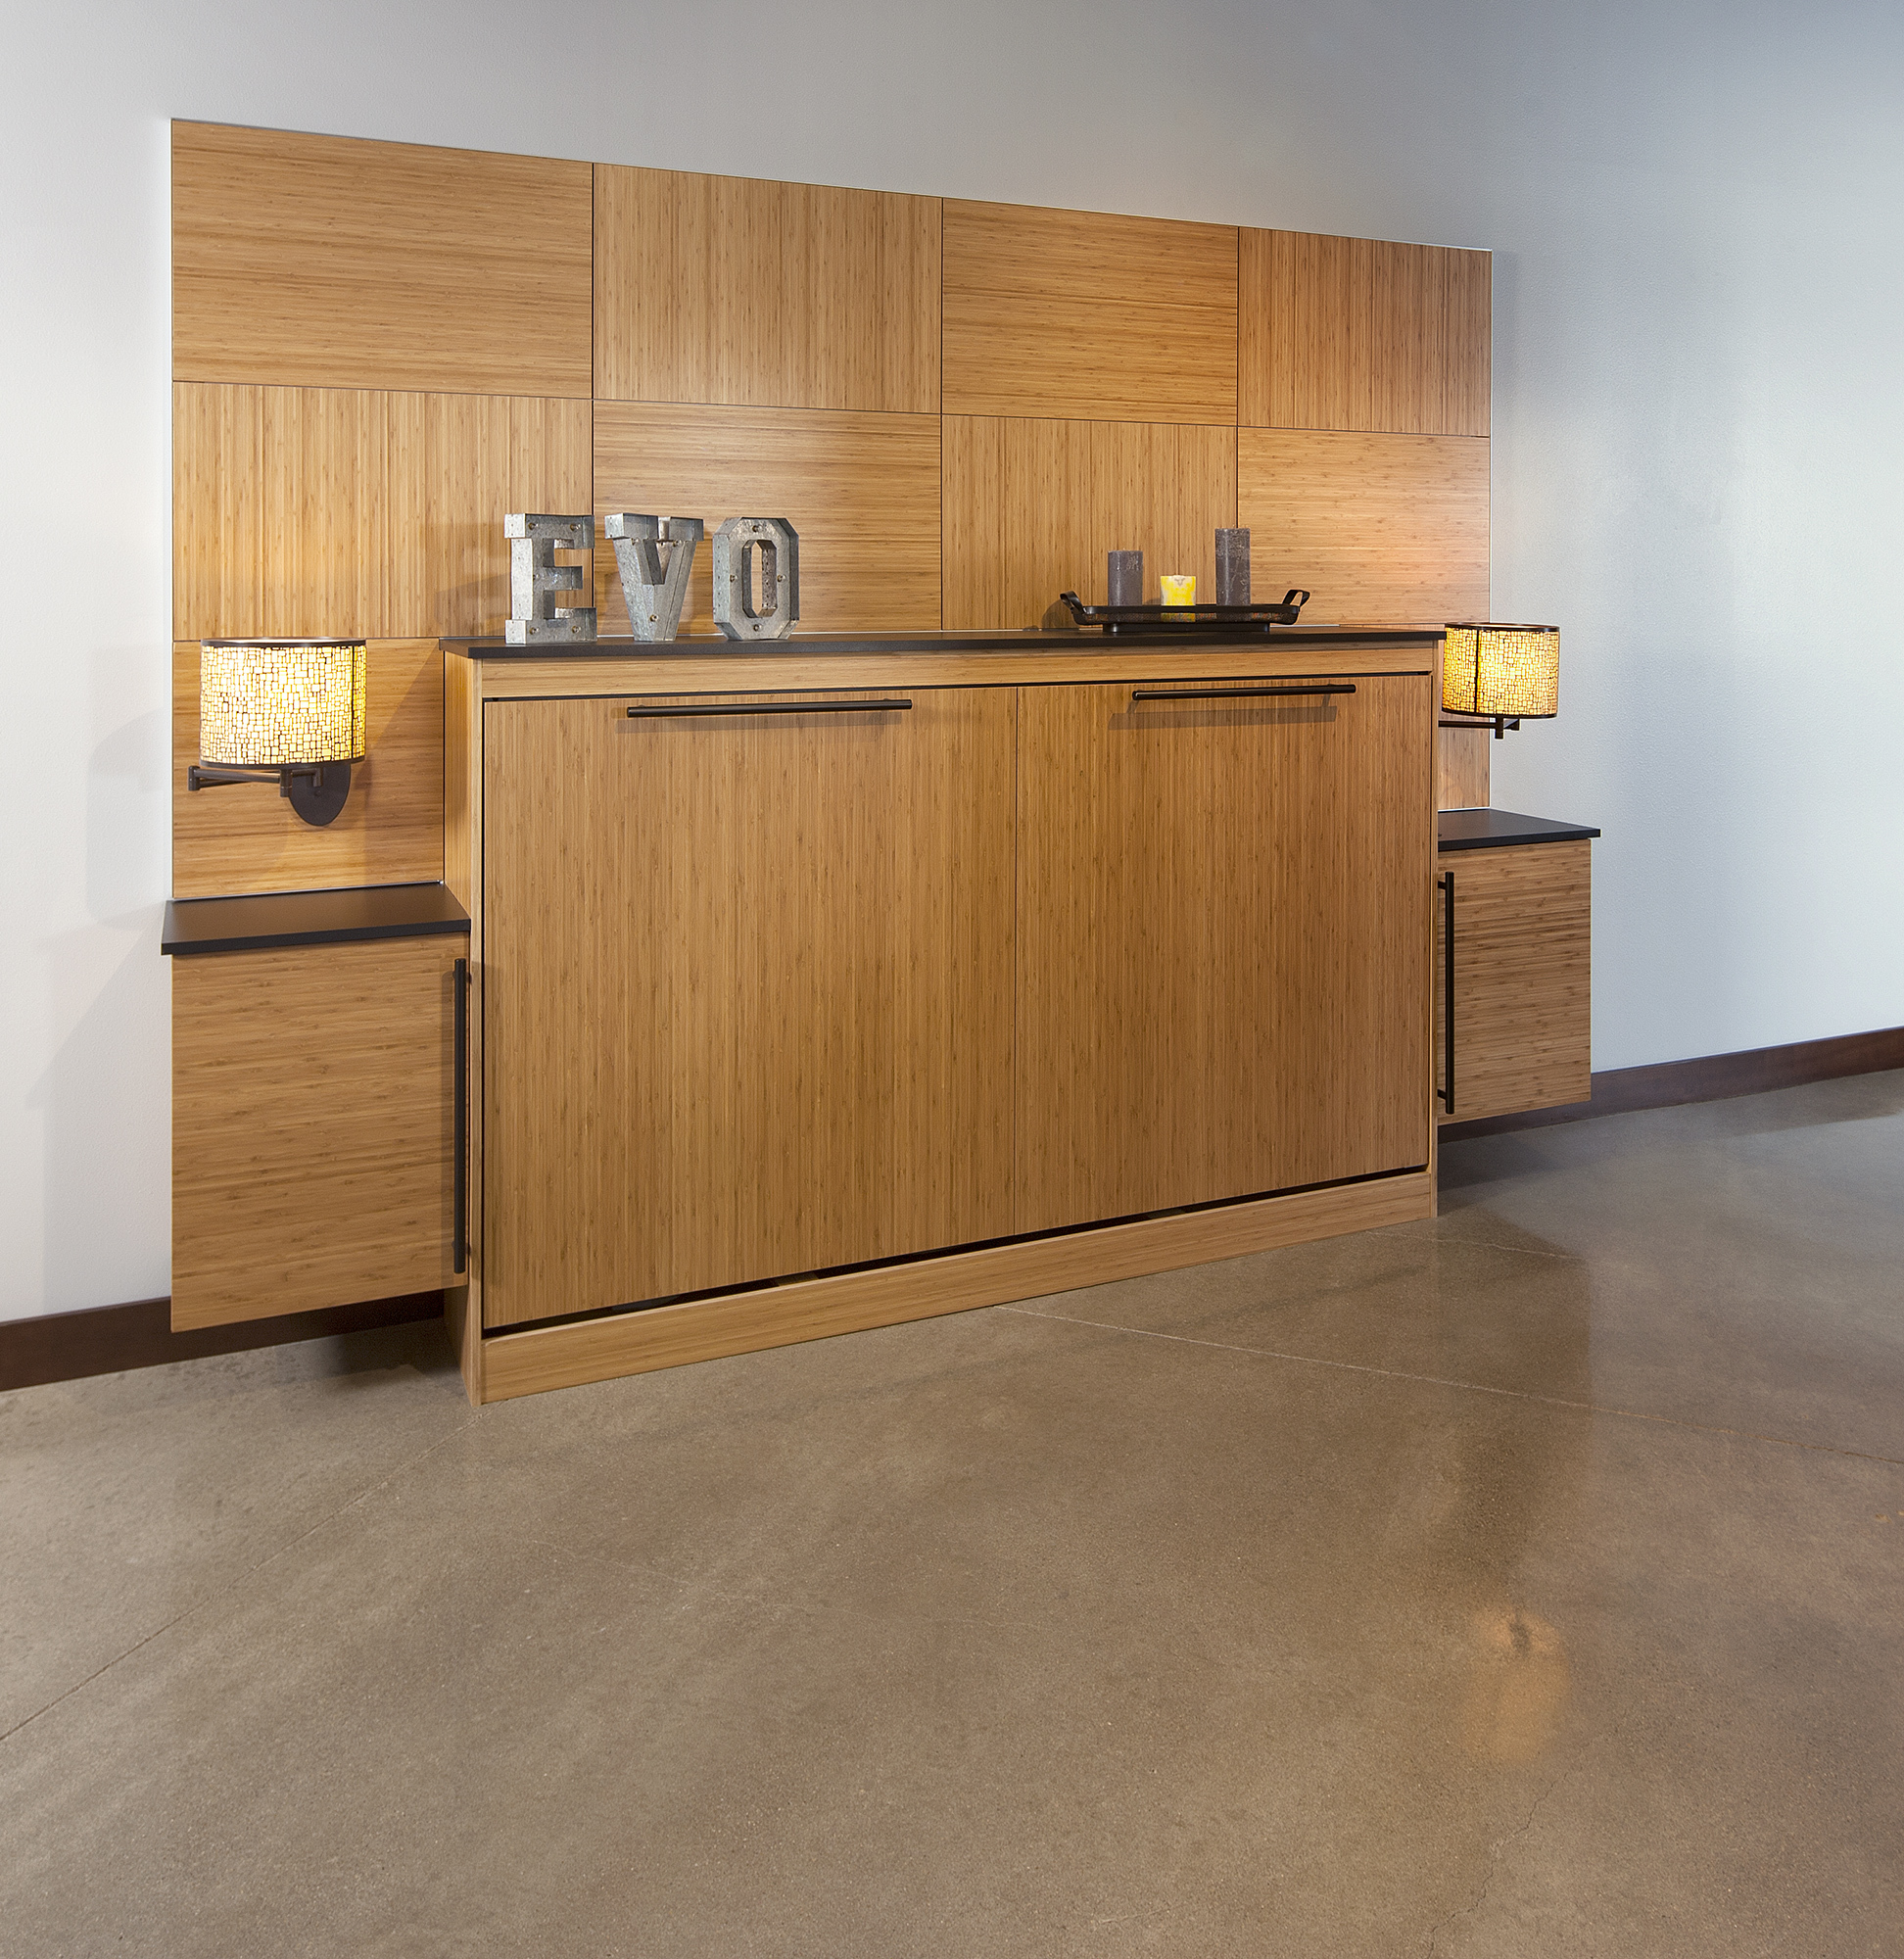 Stained Murphy Bed and cabinets in Bamboo Natural by ShowplaceEVO - view 1